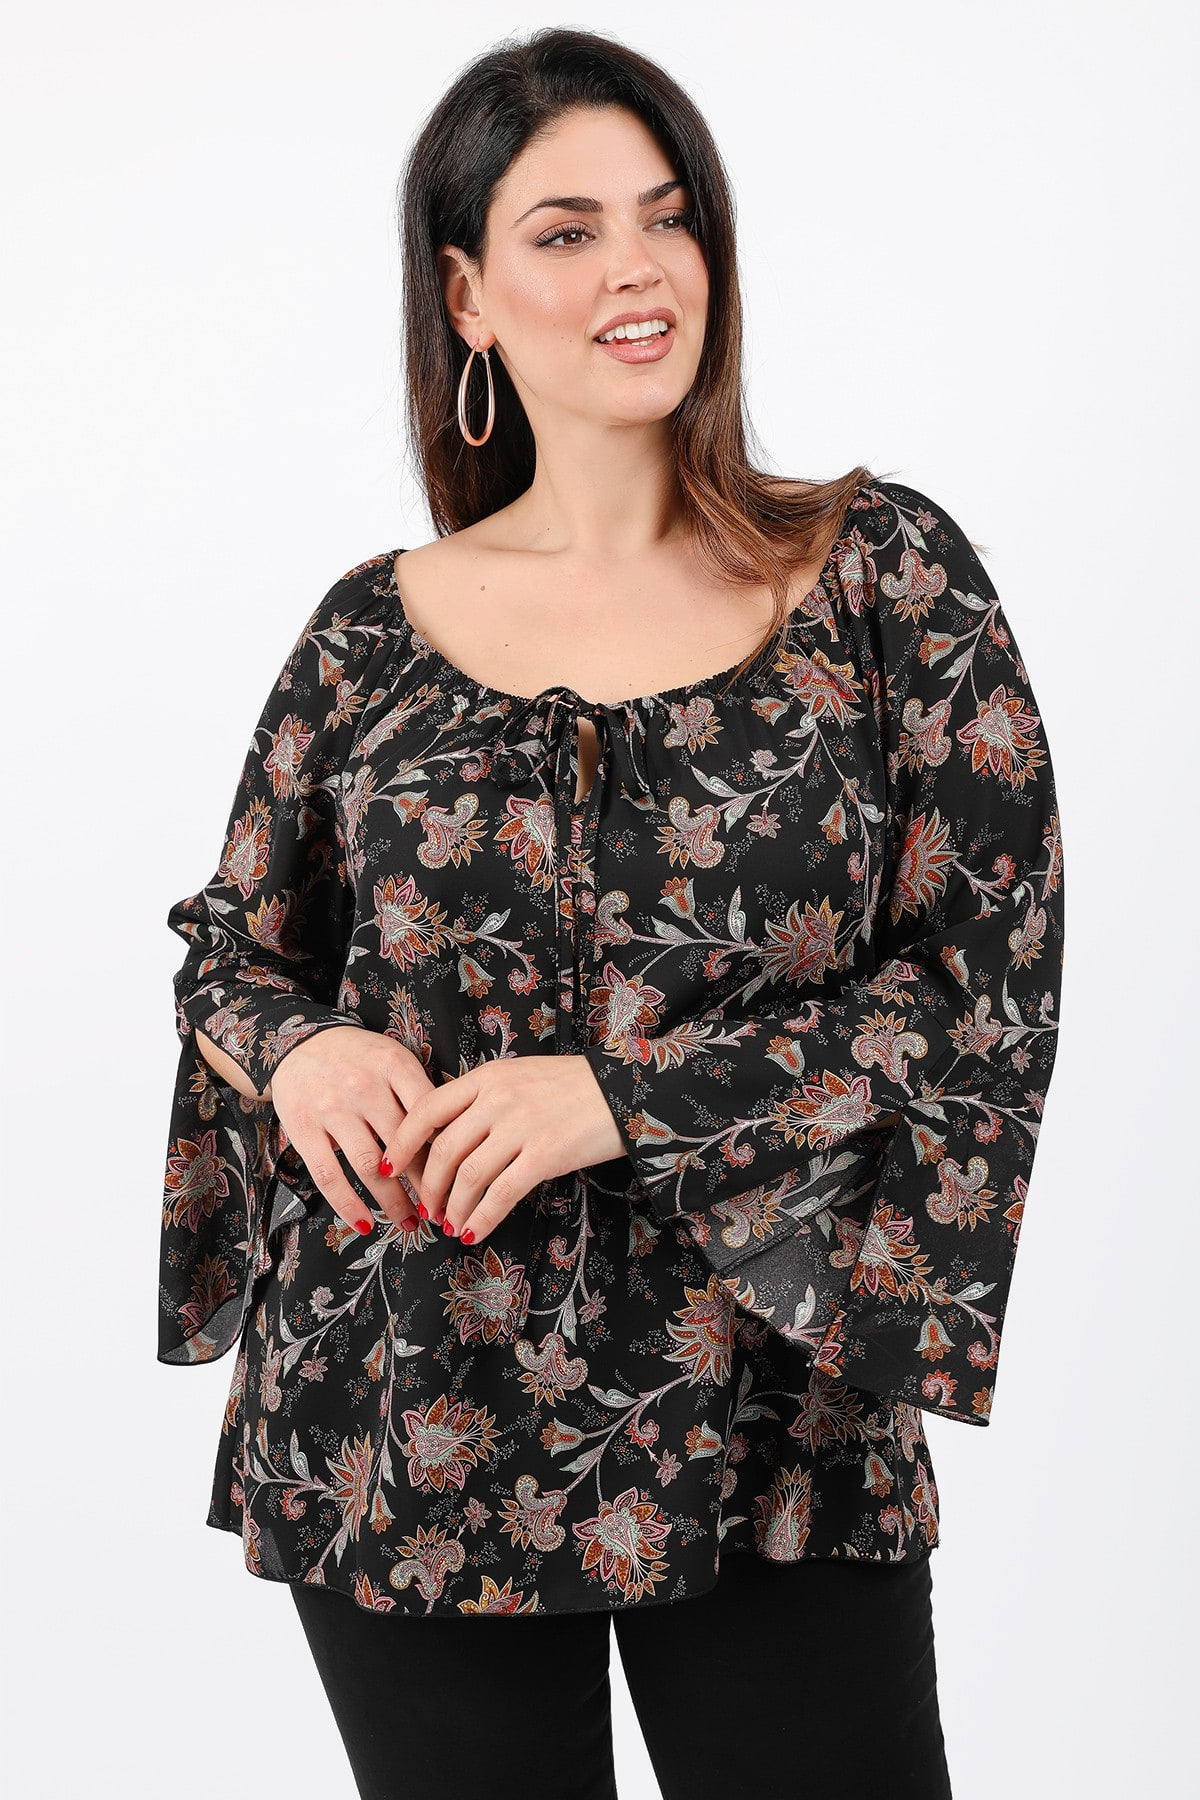 Floral shirtblouse with flared sleeves